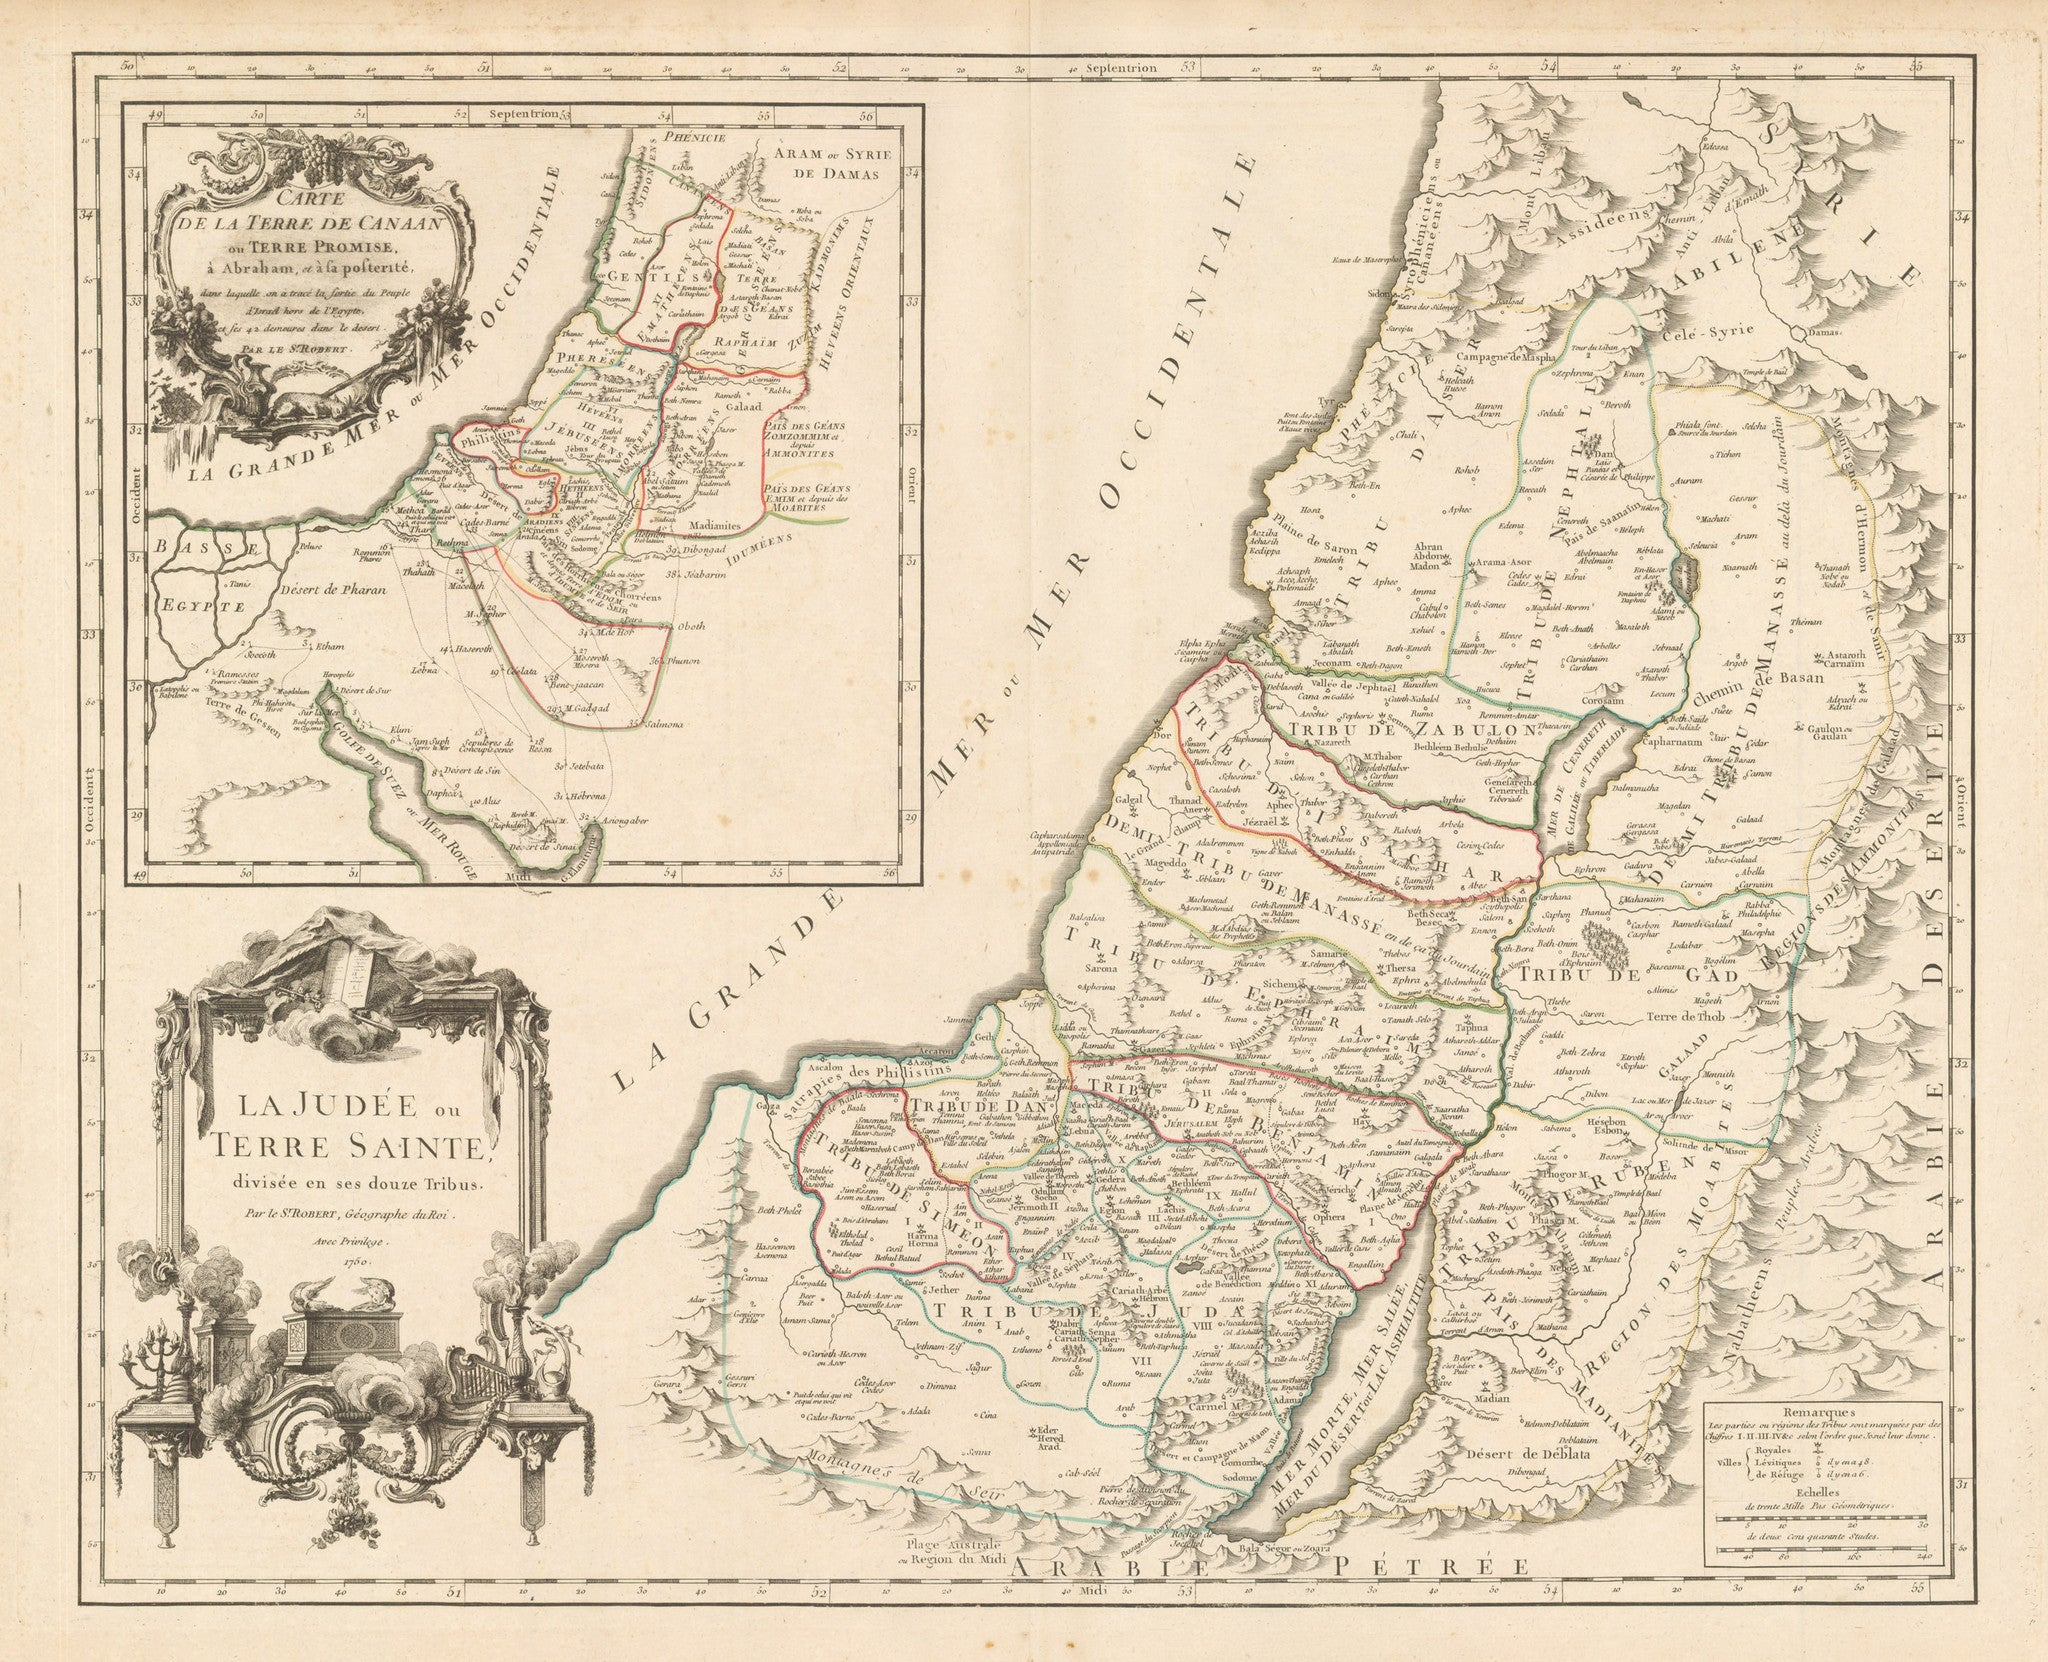 nwcartographic.com: Carte de la Terre de Canaan ou Terre Promise a Abraham... By: Vaugondy Date: 1657 - Antique map of the holy land showing the twelve tribes